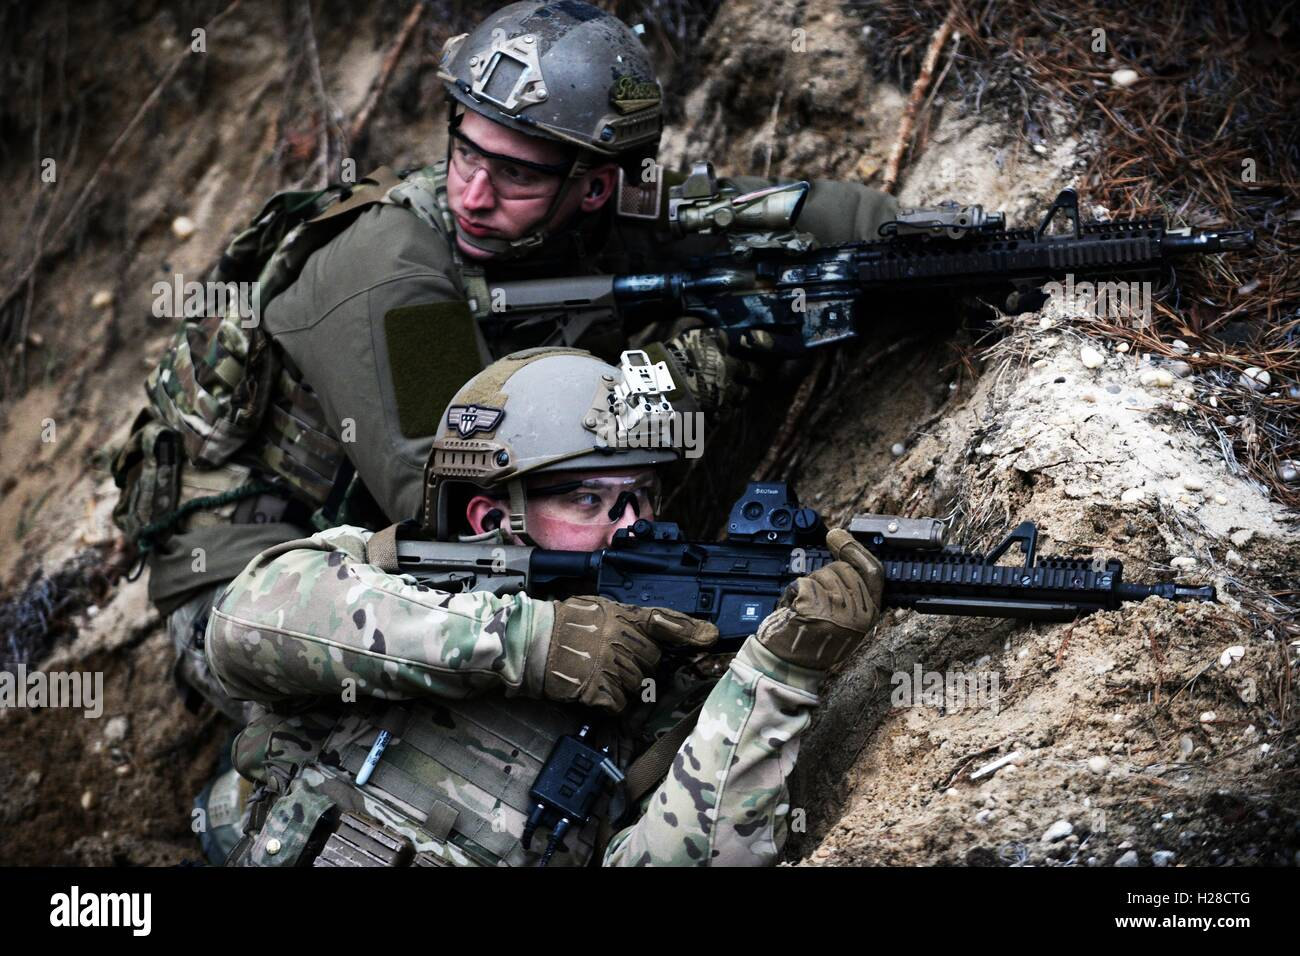 U.S. Air National Guard special operation airmen during live-fire training April 9, 2015 in Westhampton Beach, New - Stock Image